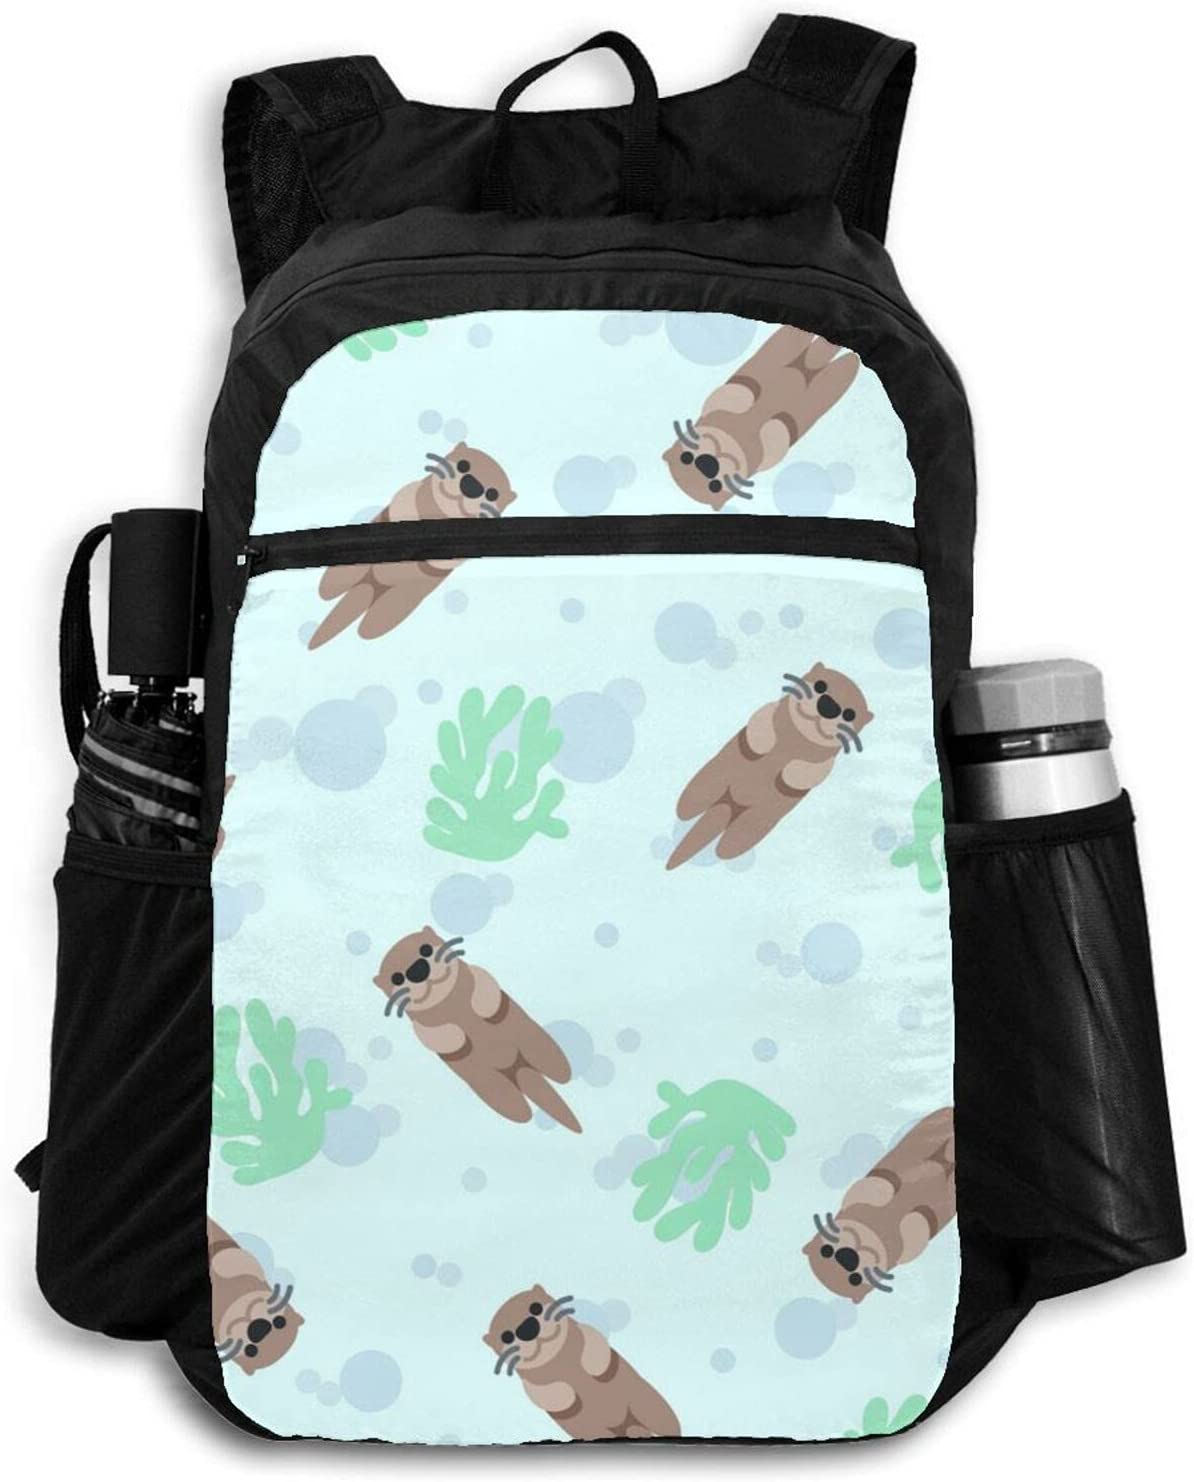 Zolama Cute Sea Otter with Backpacks for Popular products Men Ranking TOP20 Bubbles Women